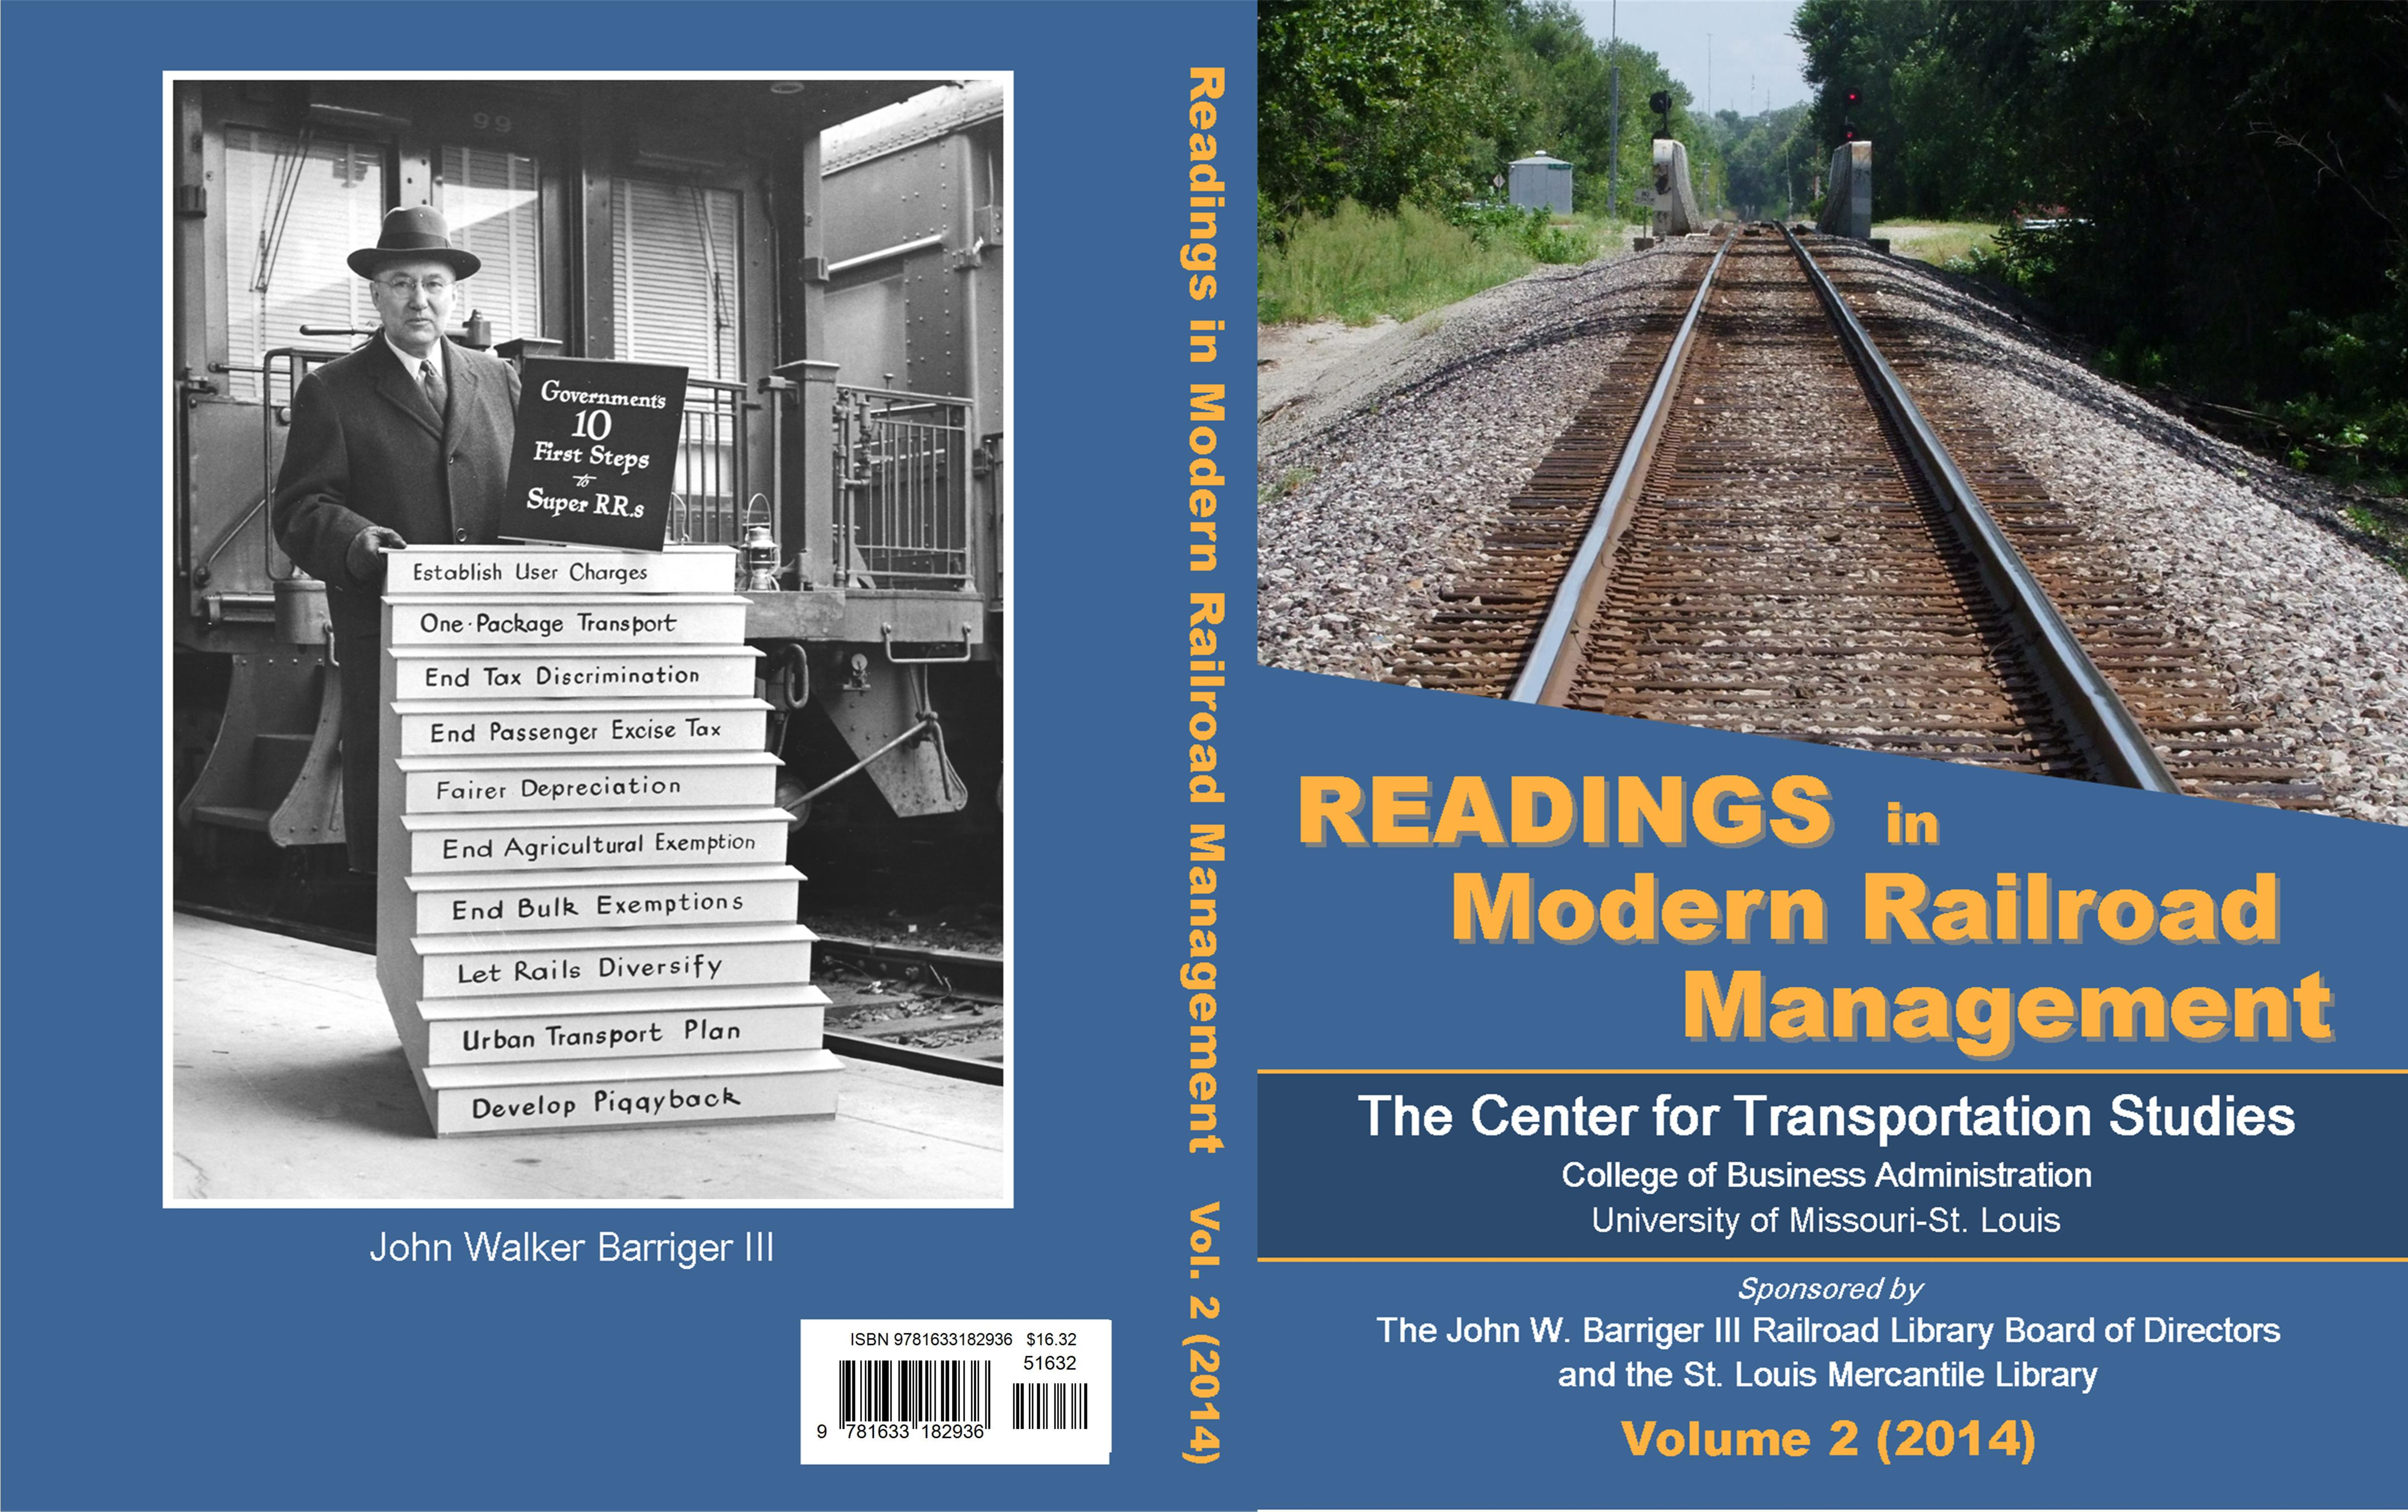 Readings in Modern Railroad Management, Volume 2 cover image